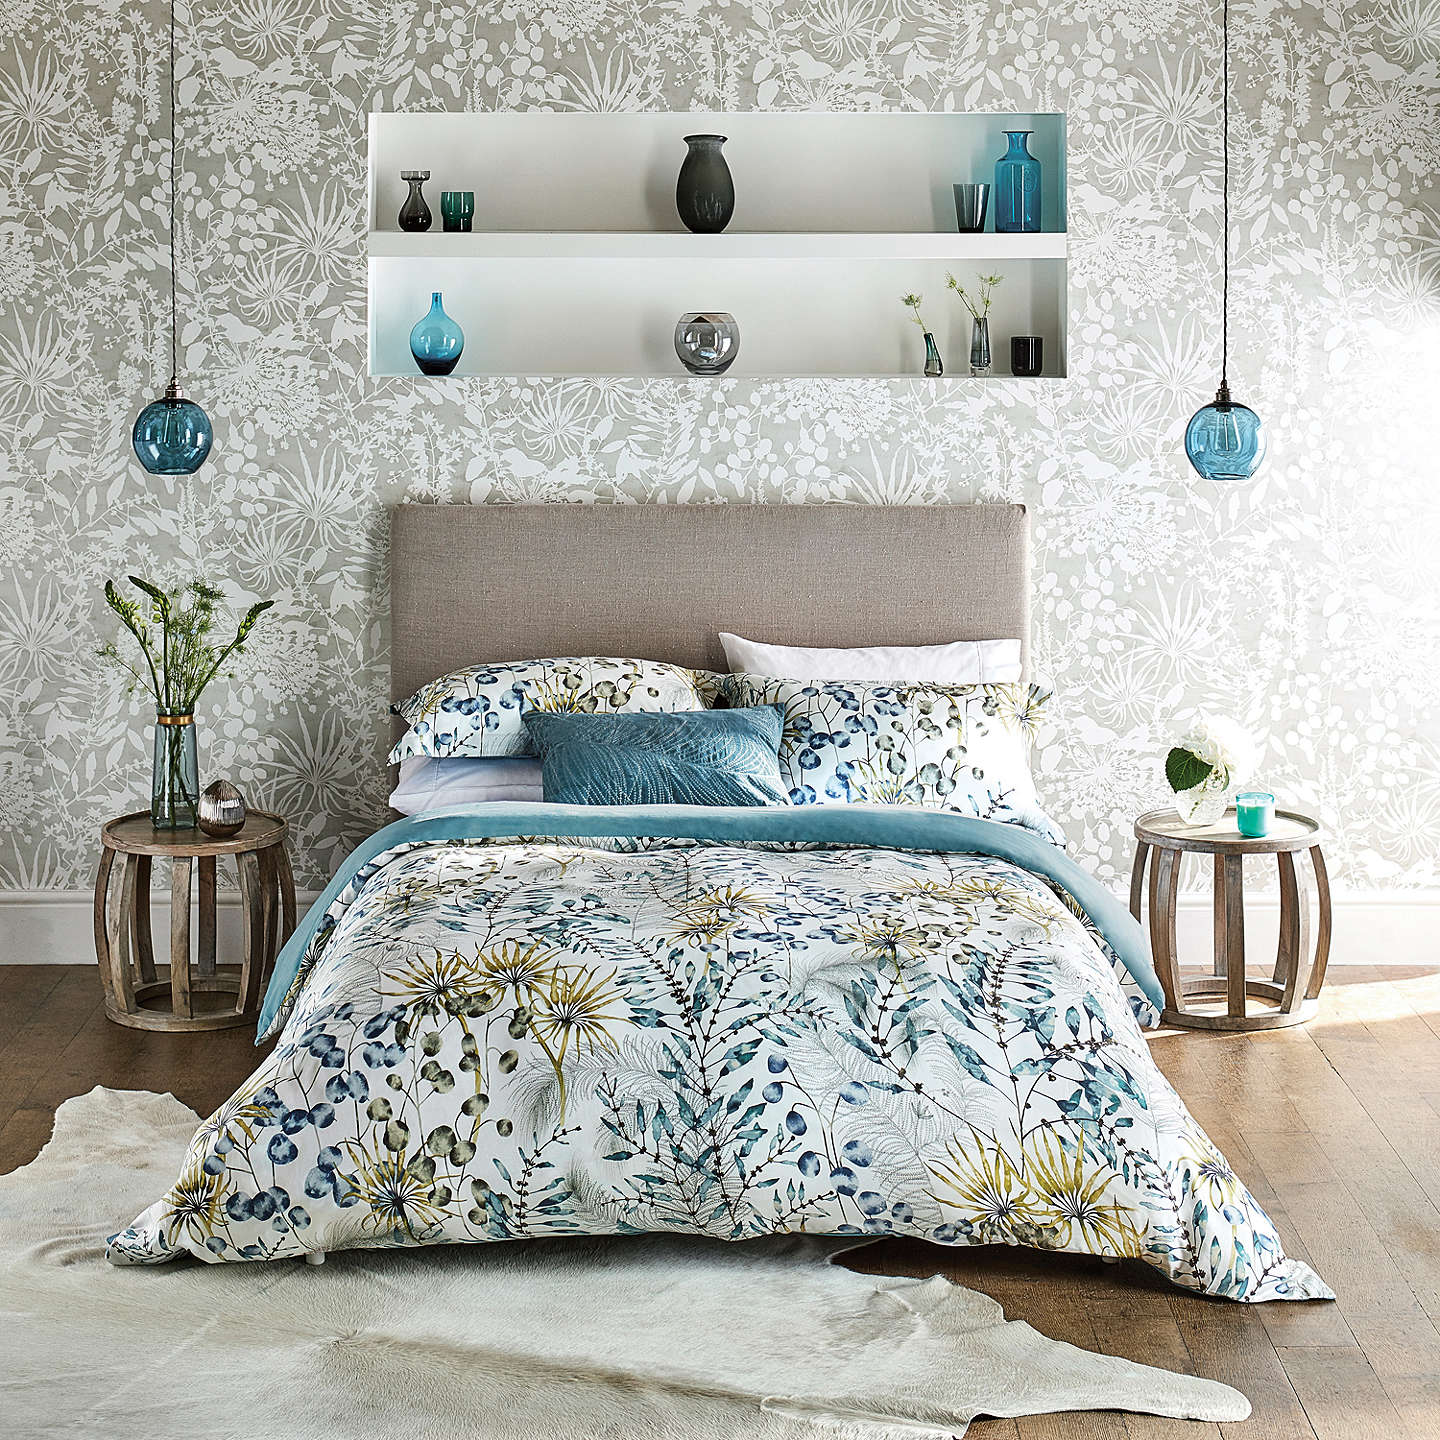 harlequin postelia bedding at john lewis. Black Bedroom Furniture Sets. Home Design Ideas